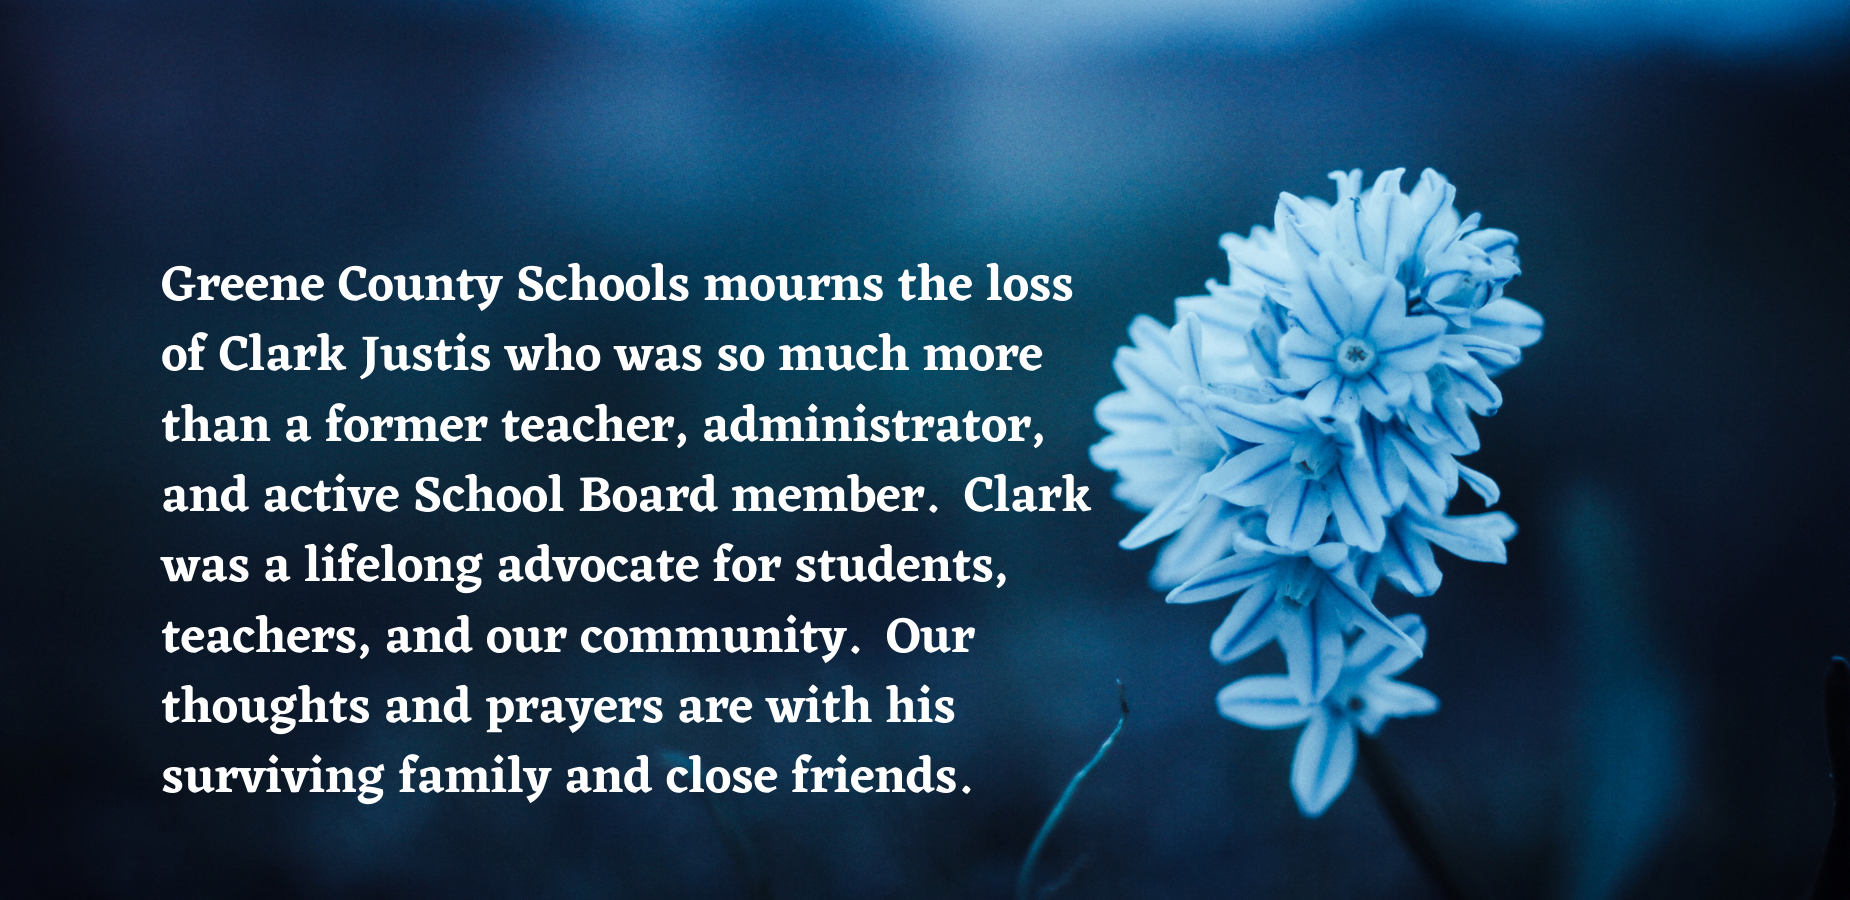 GCS Mourns Loss of Clark Justis